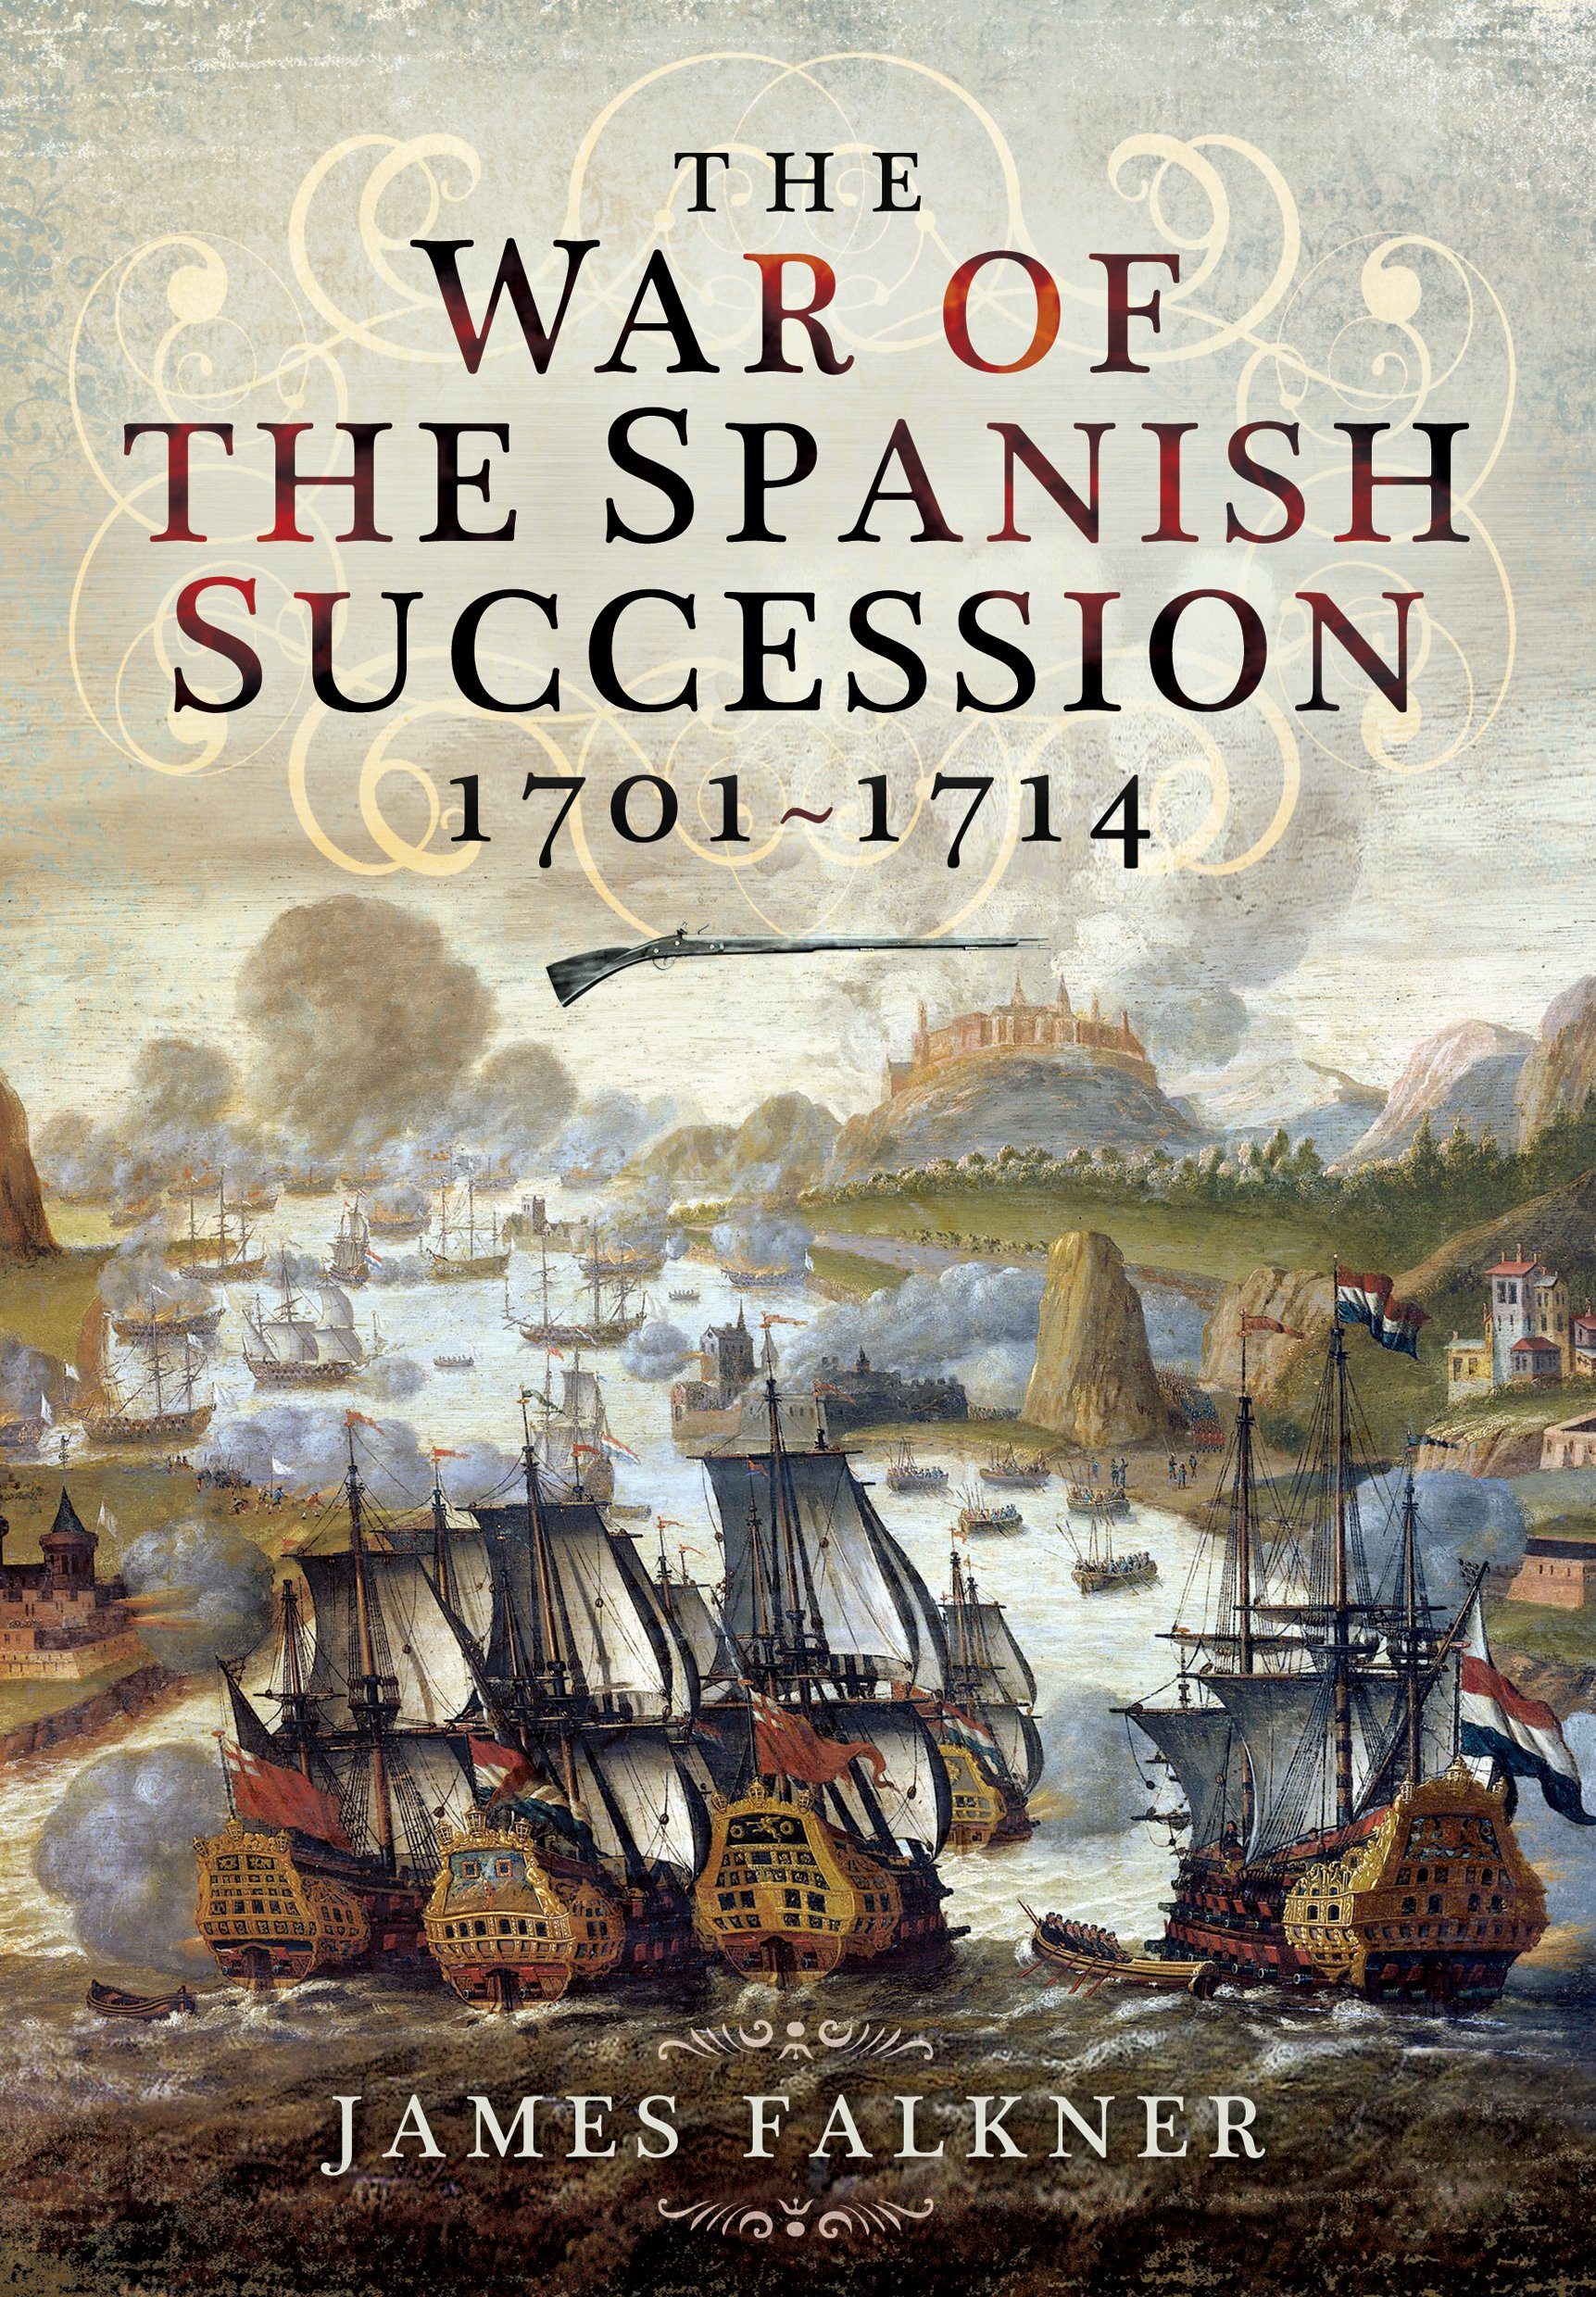 The War of the Spanish Succession 1701 - 1714: James Falkner:  9781781590317: Amazon.com: Books